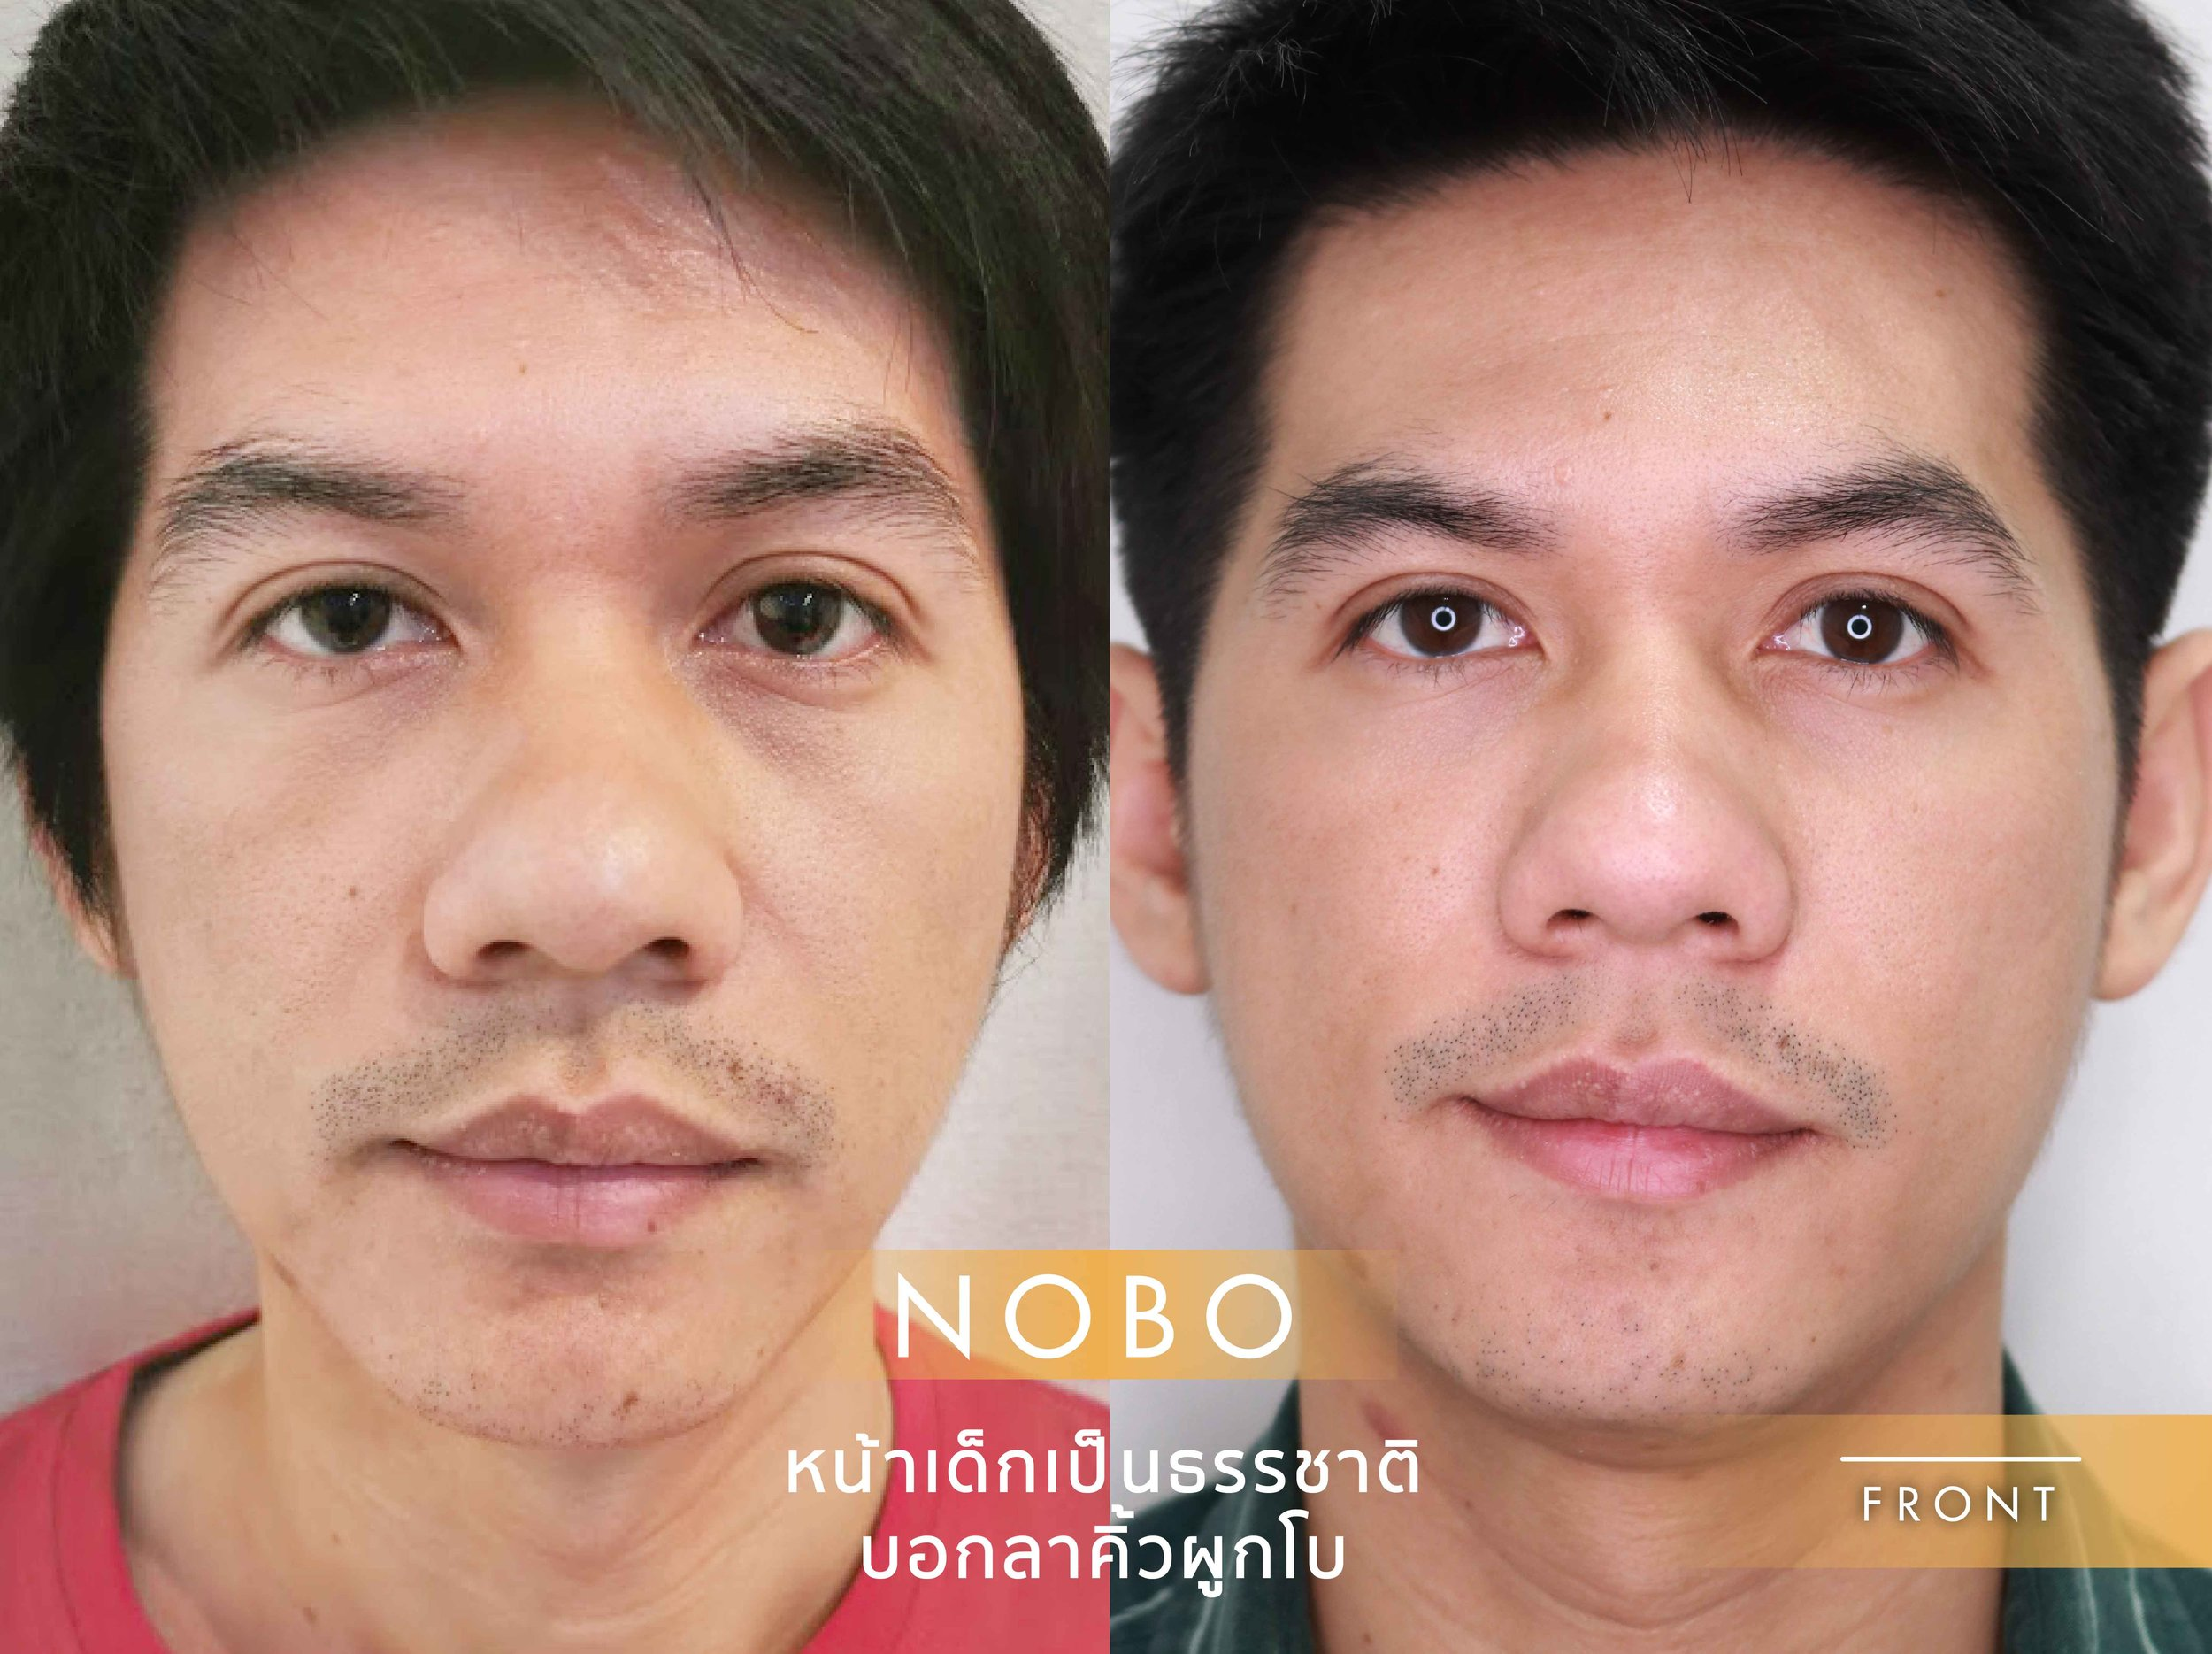 Before & After NOBO